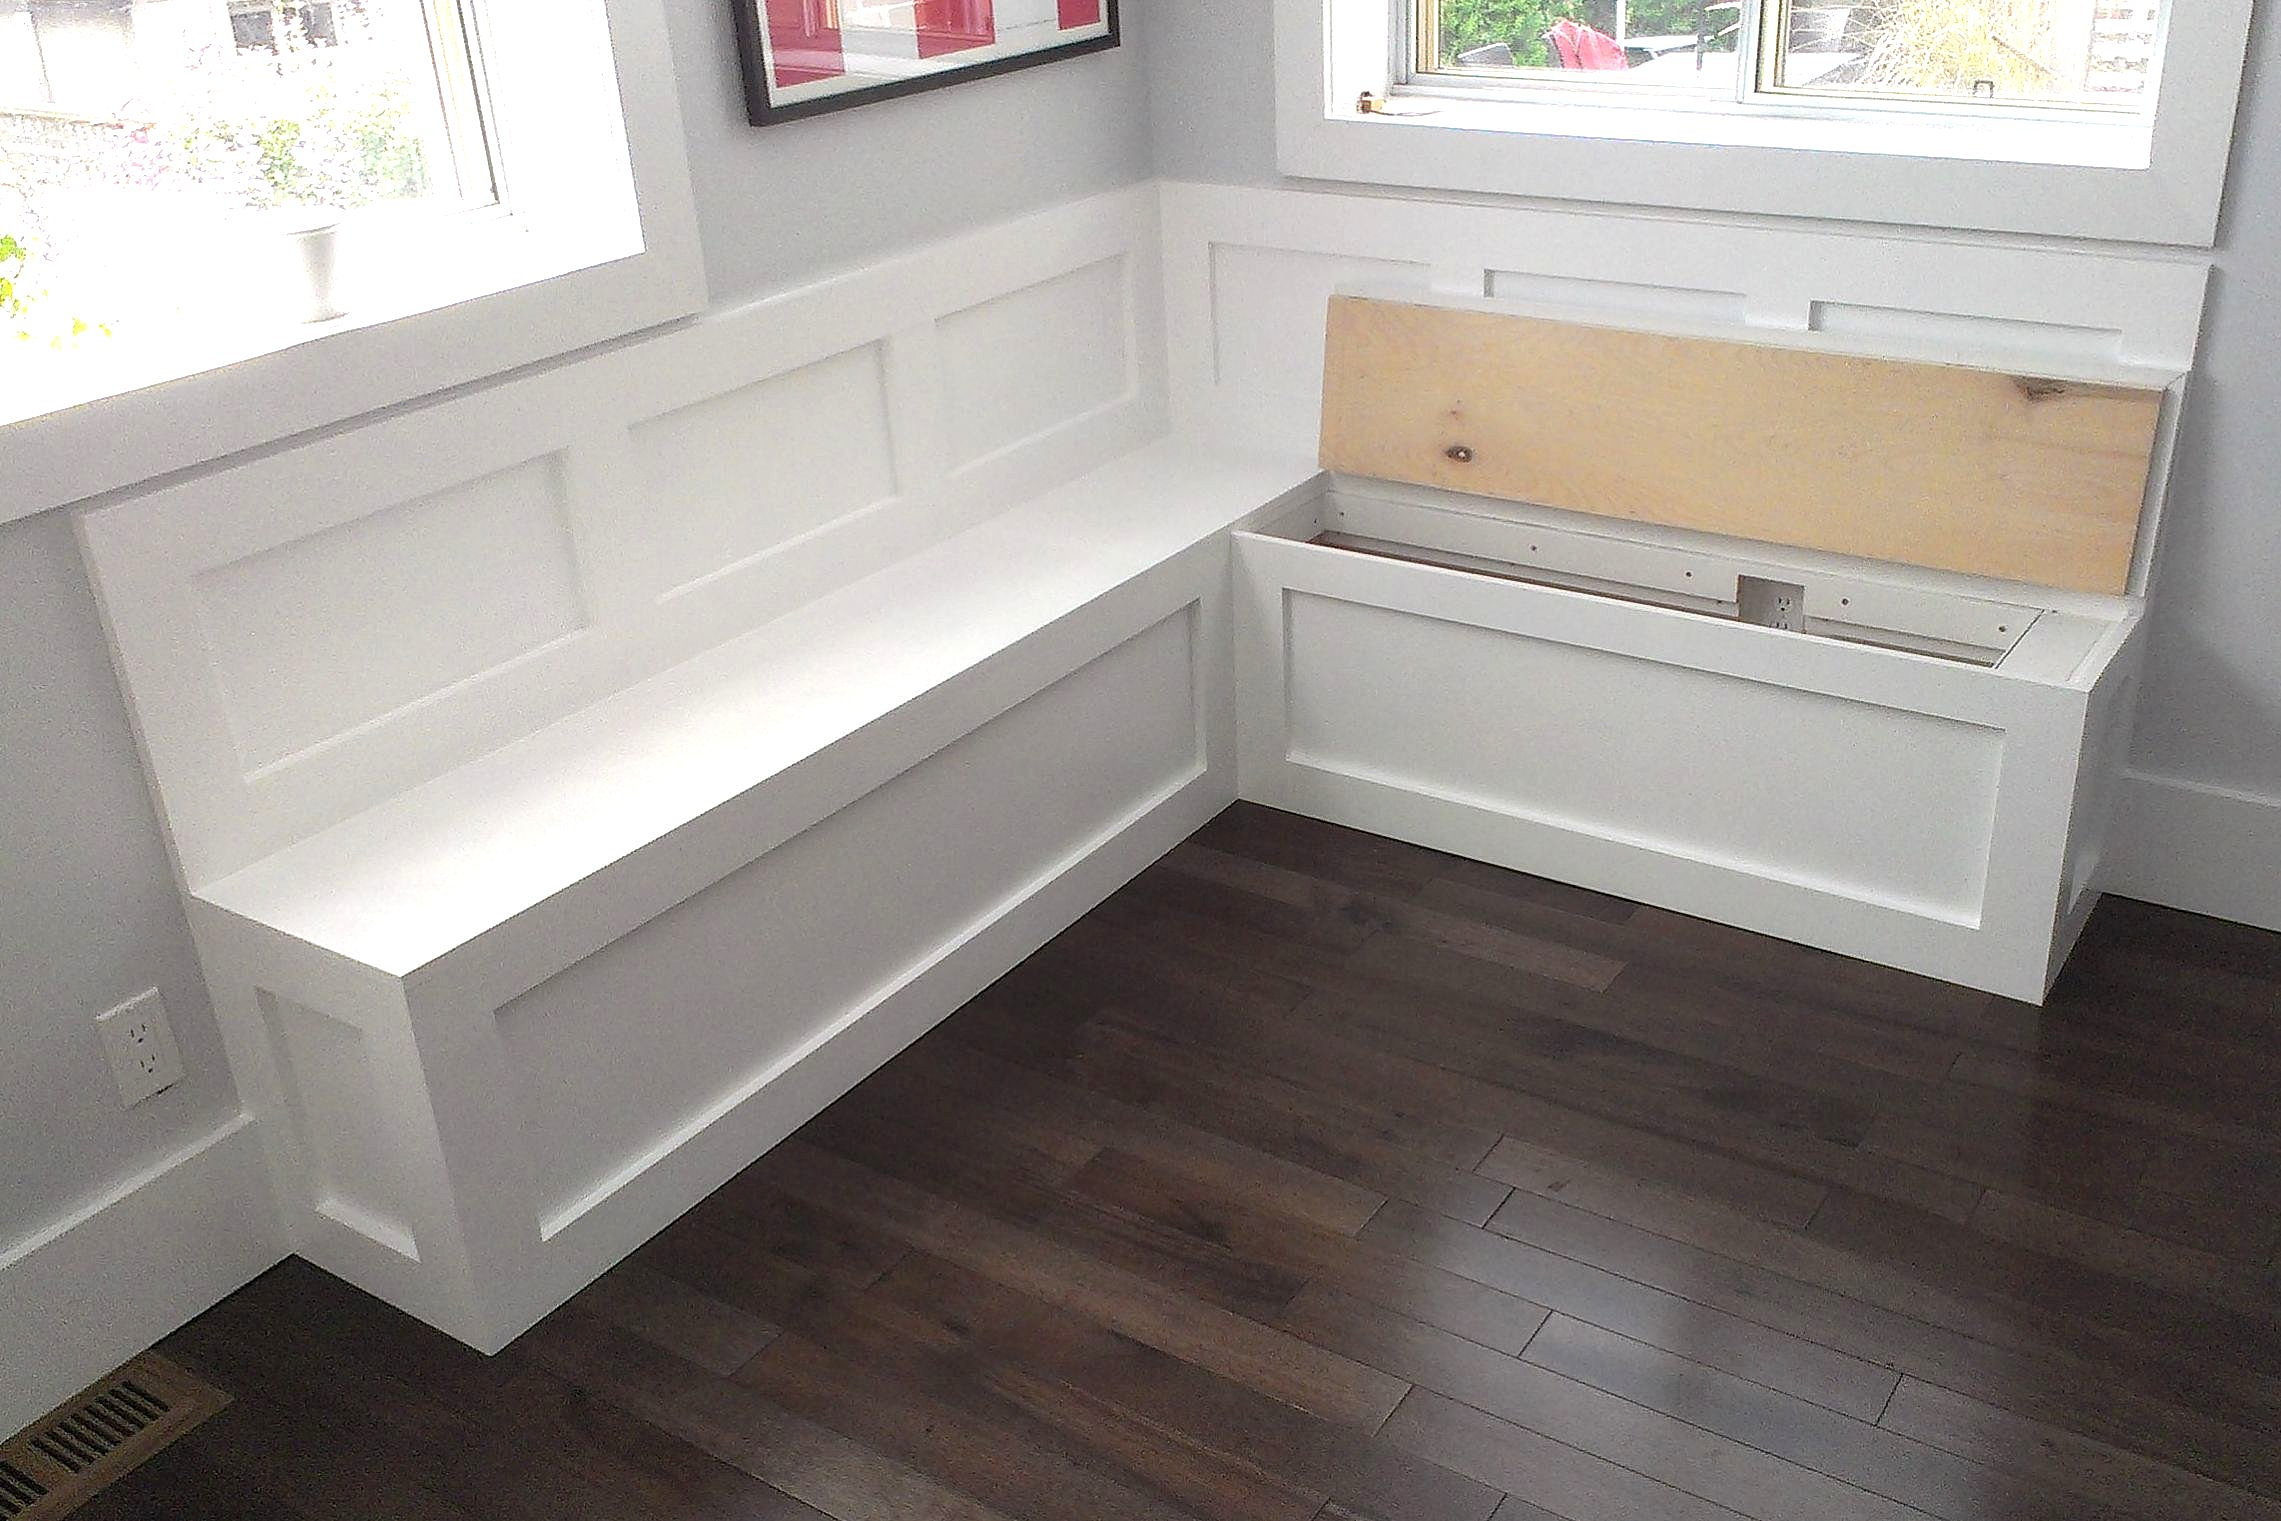 Bench for storage fitted with seat cushions and a kitchen for Kitchen table with bench